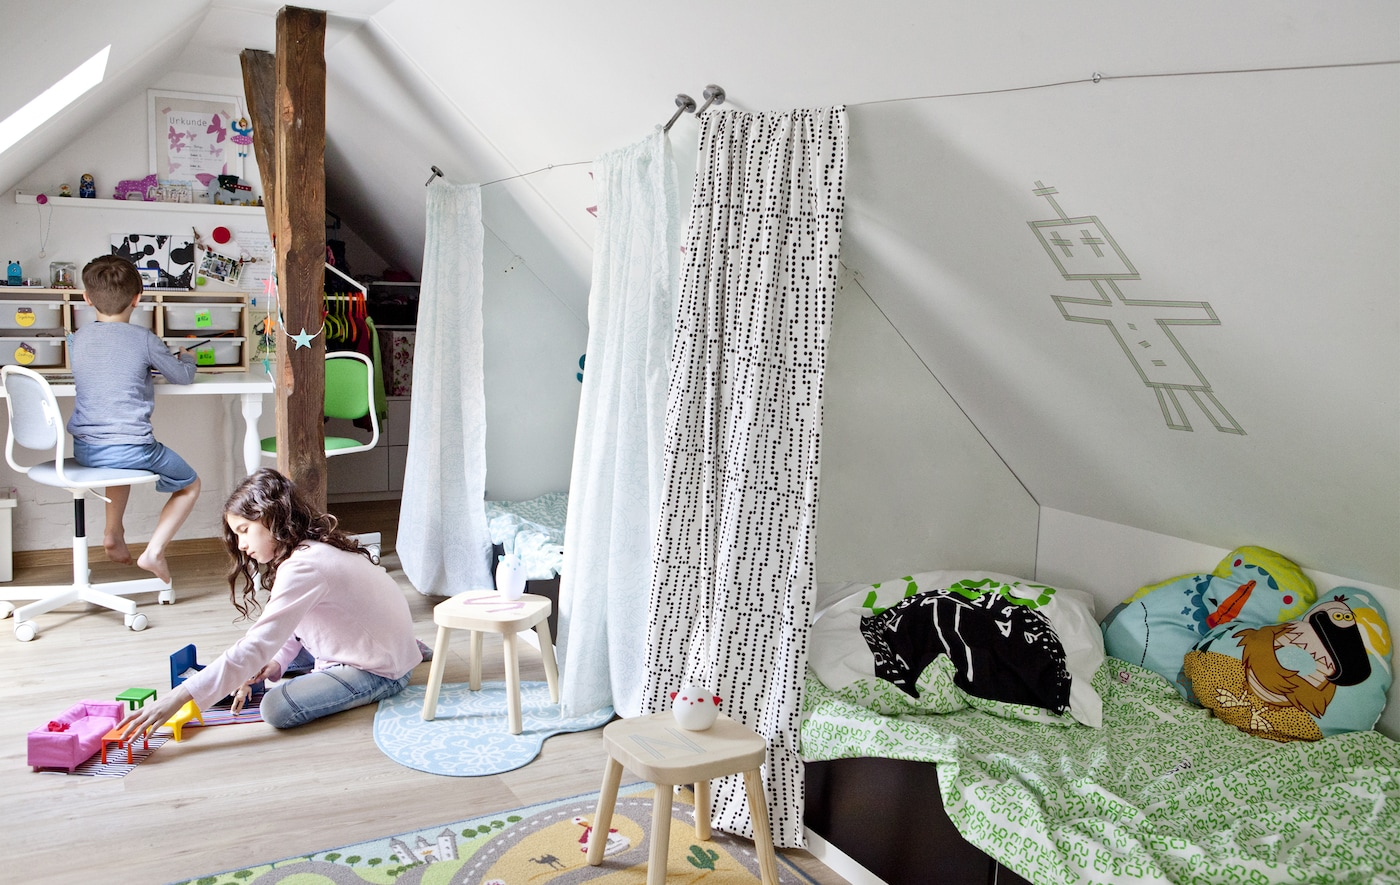 Two children playing in a shared bedroom with a sloped ceiling.